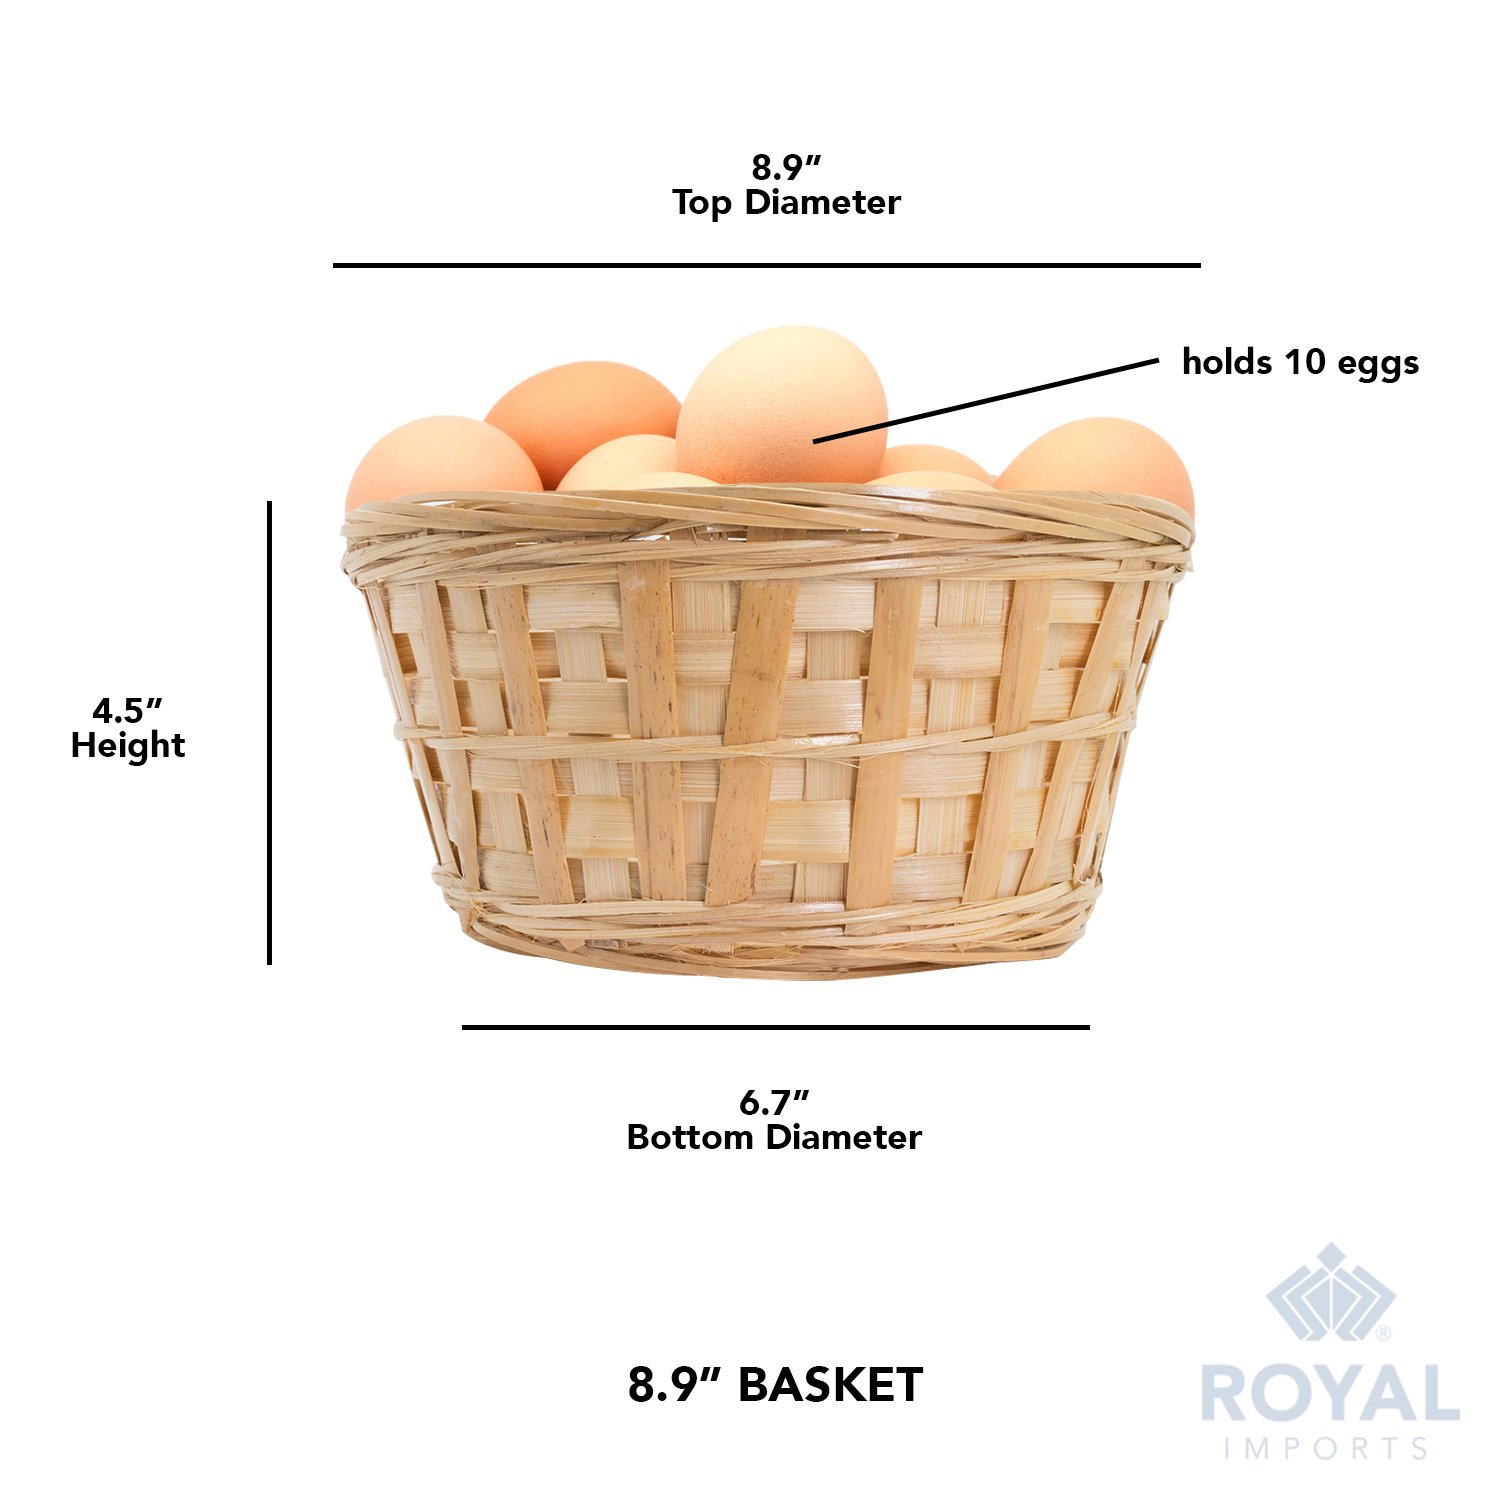 Royal Imports 8'' Round Natural Bamboo Handwoven Bread Basket 4''x8'' with Braided Rim, Pack of 6 by Royal Imports (Image #6)